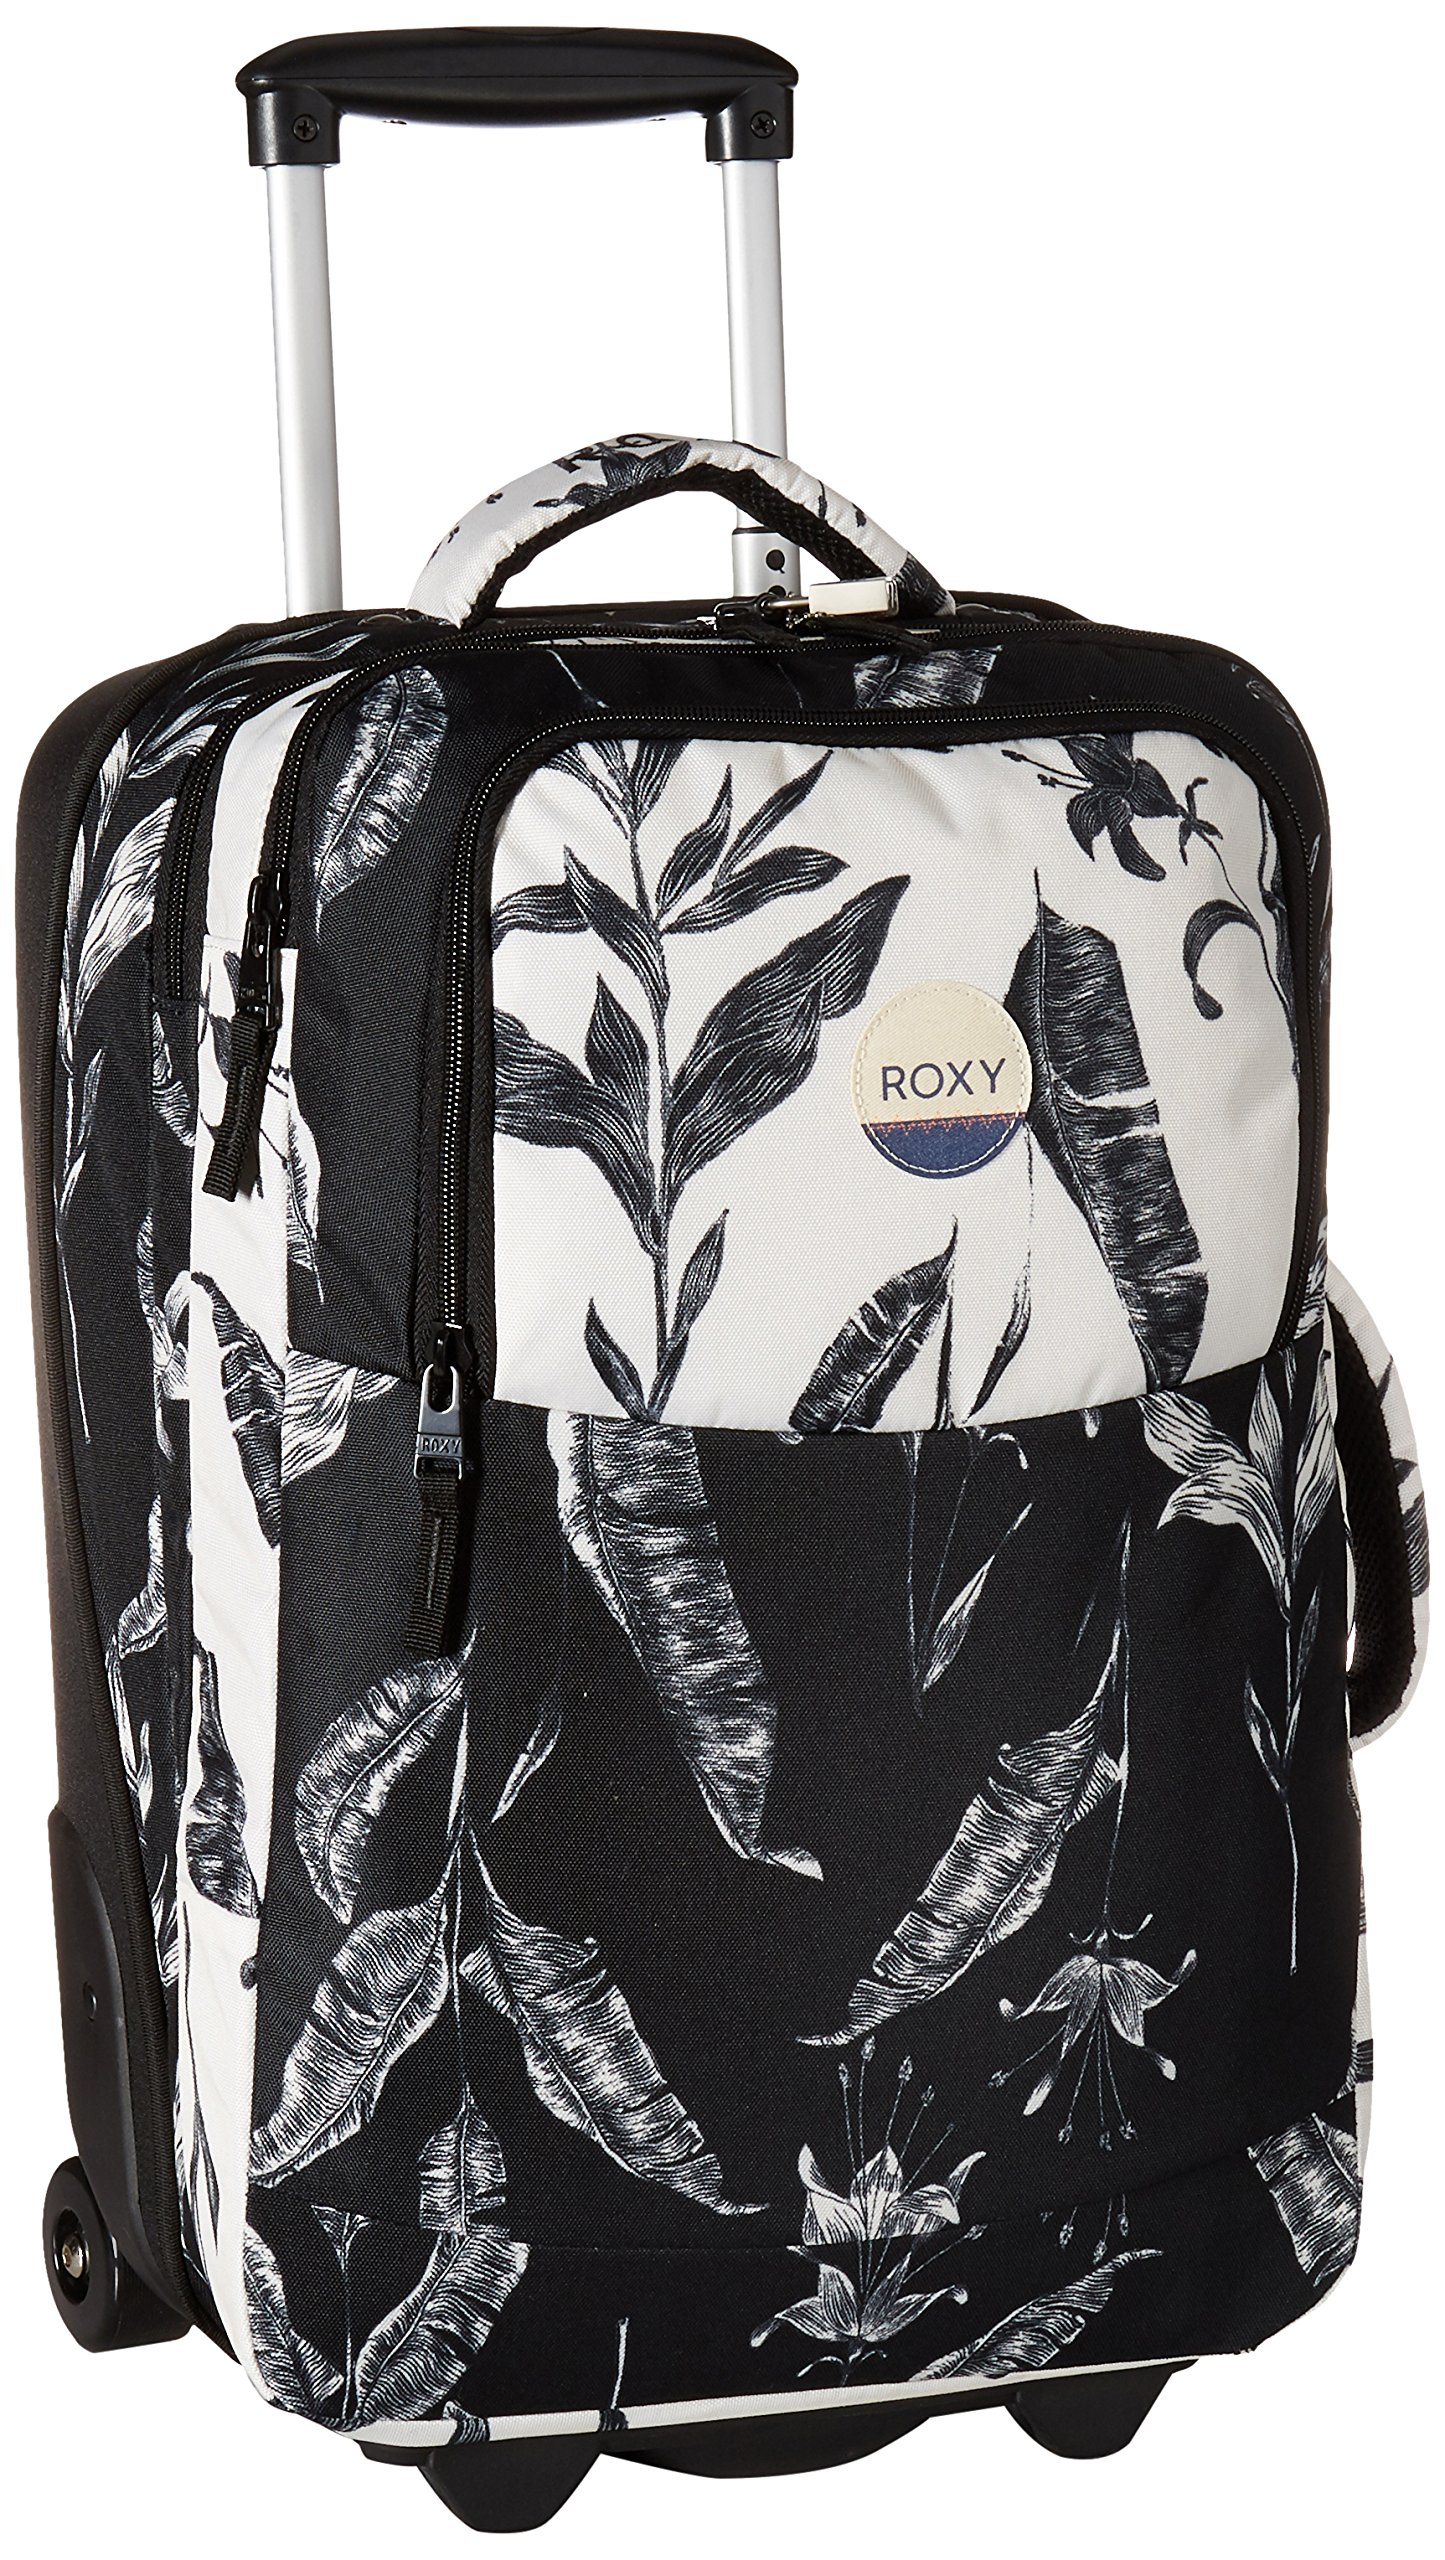 Roxy Women's Roll up Flight Suitcase by Roxy